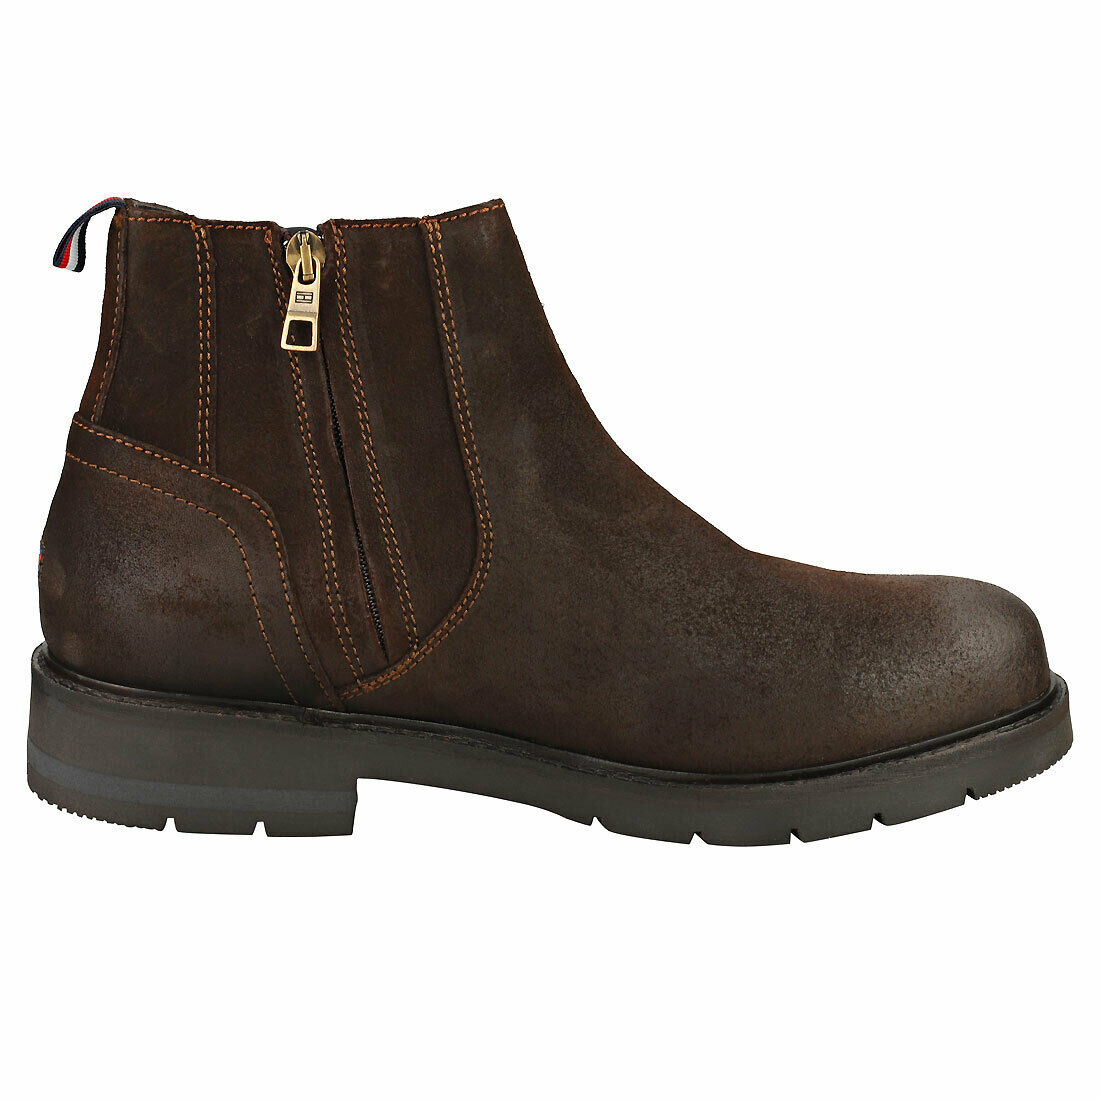 Tommy Hilfiger Corporate Mens Cocoa Chelsea Boots - 9 UK